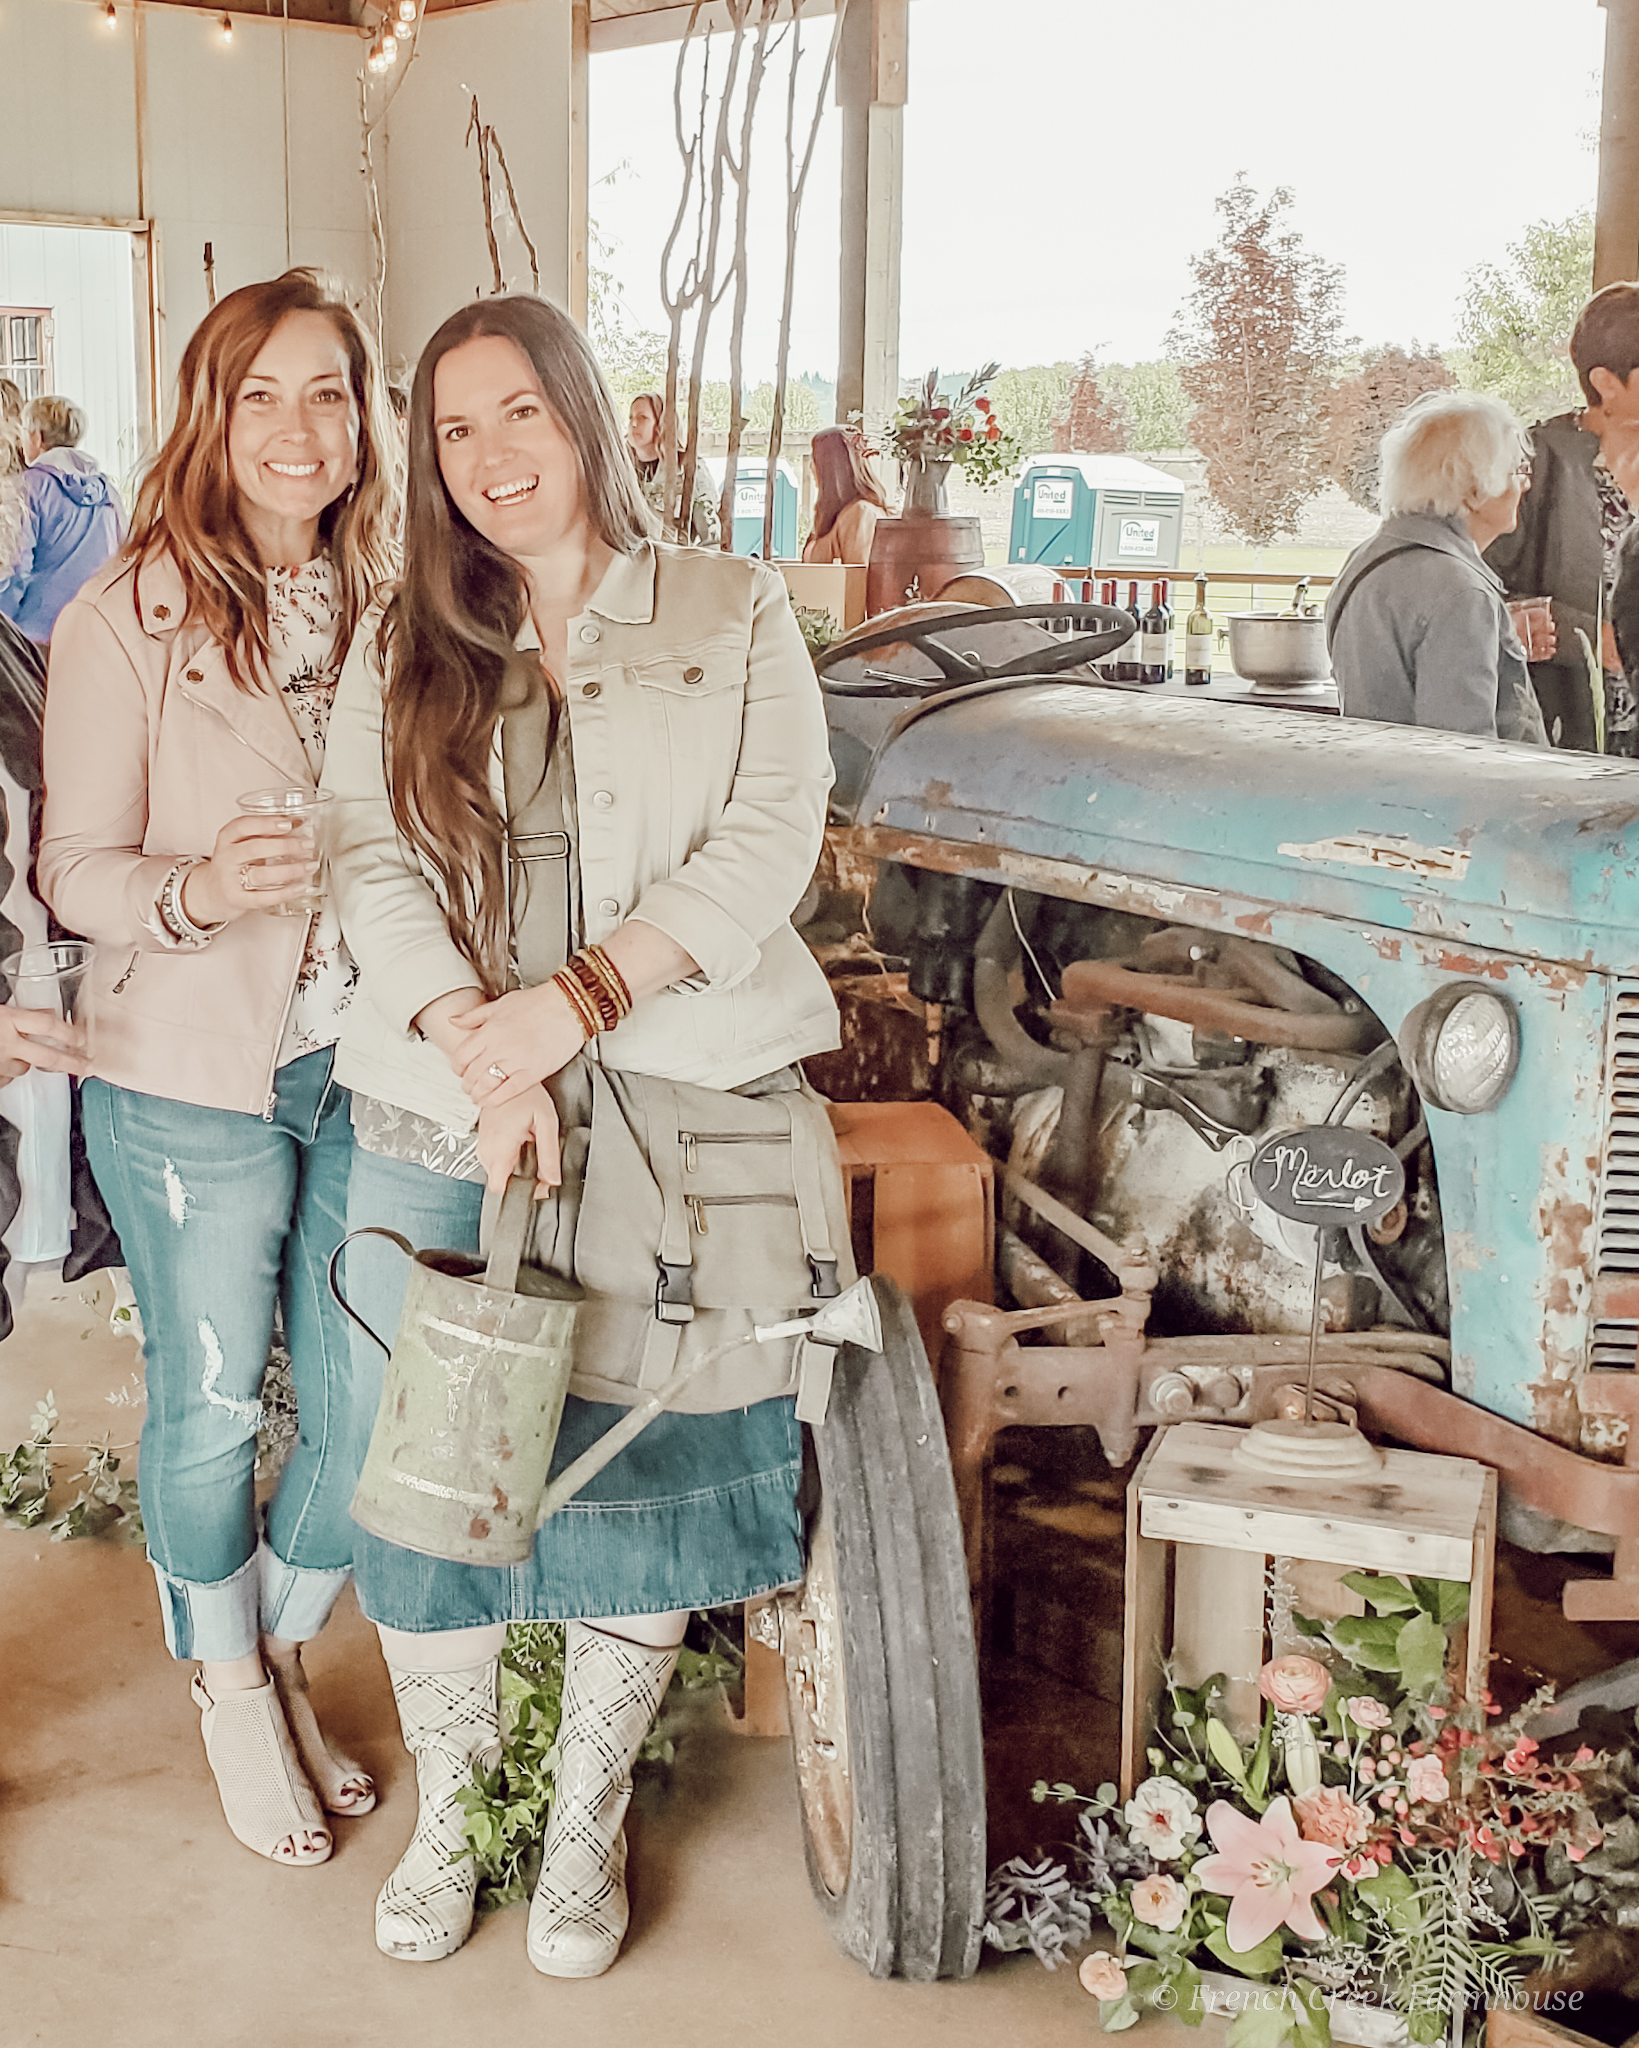 Kristi from French Creek Farmhouse has rounded up an amazing selection of vintage finds for you to shop from home